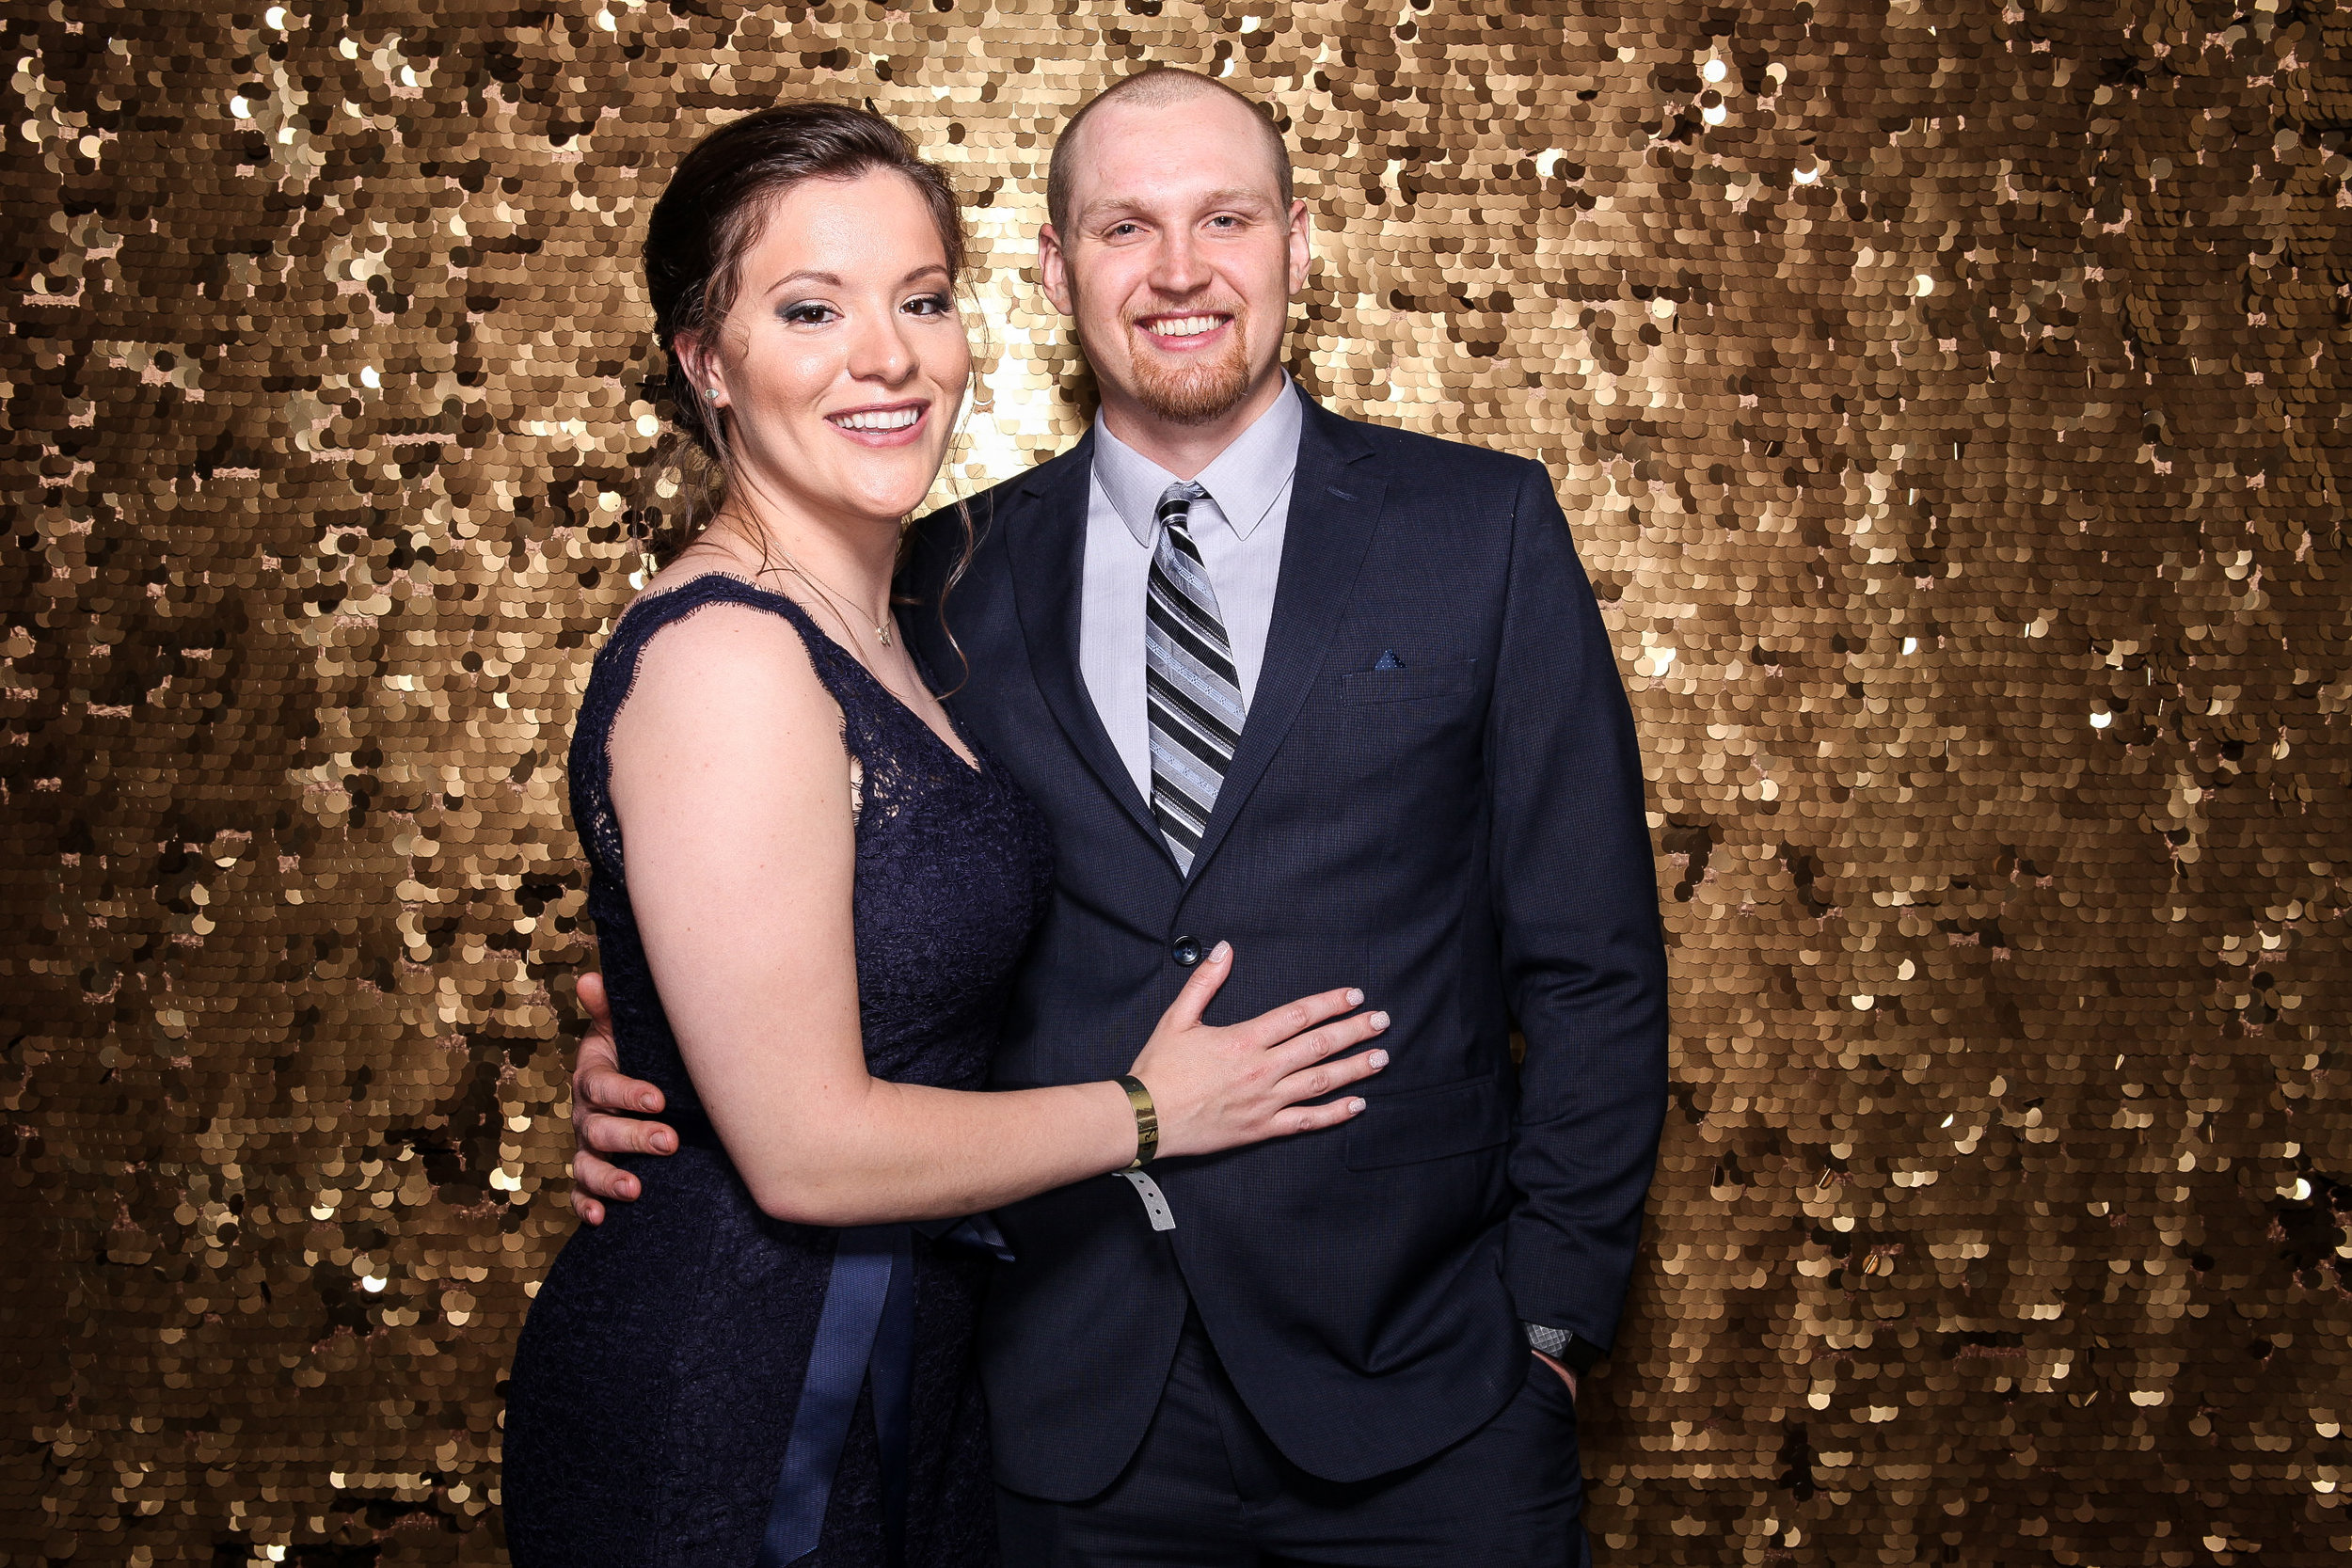 20190503_Adelphi_Senior_Formal-154.jpg